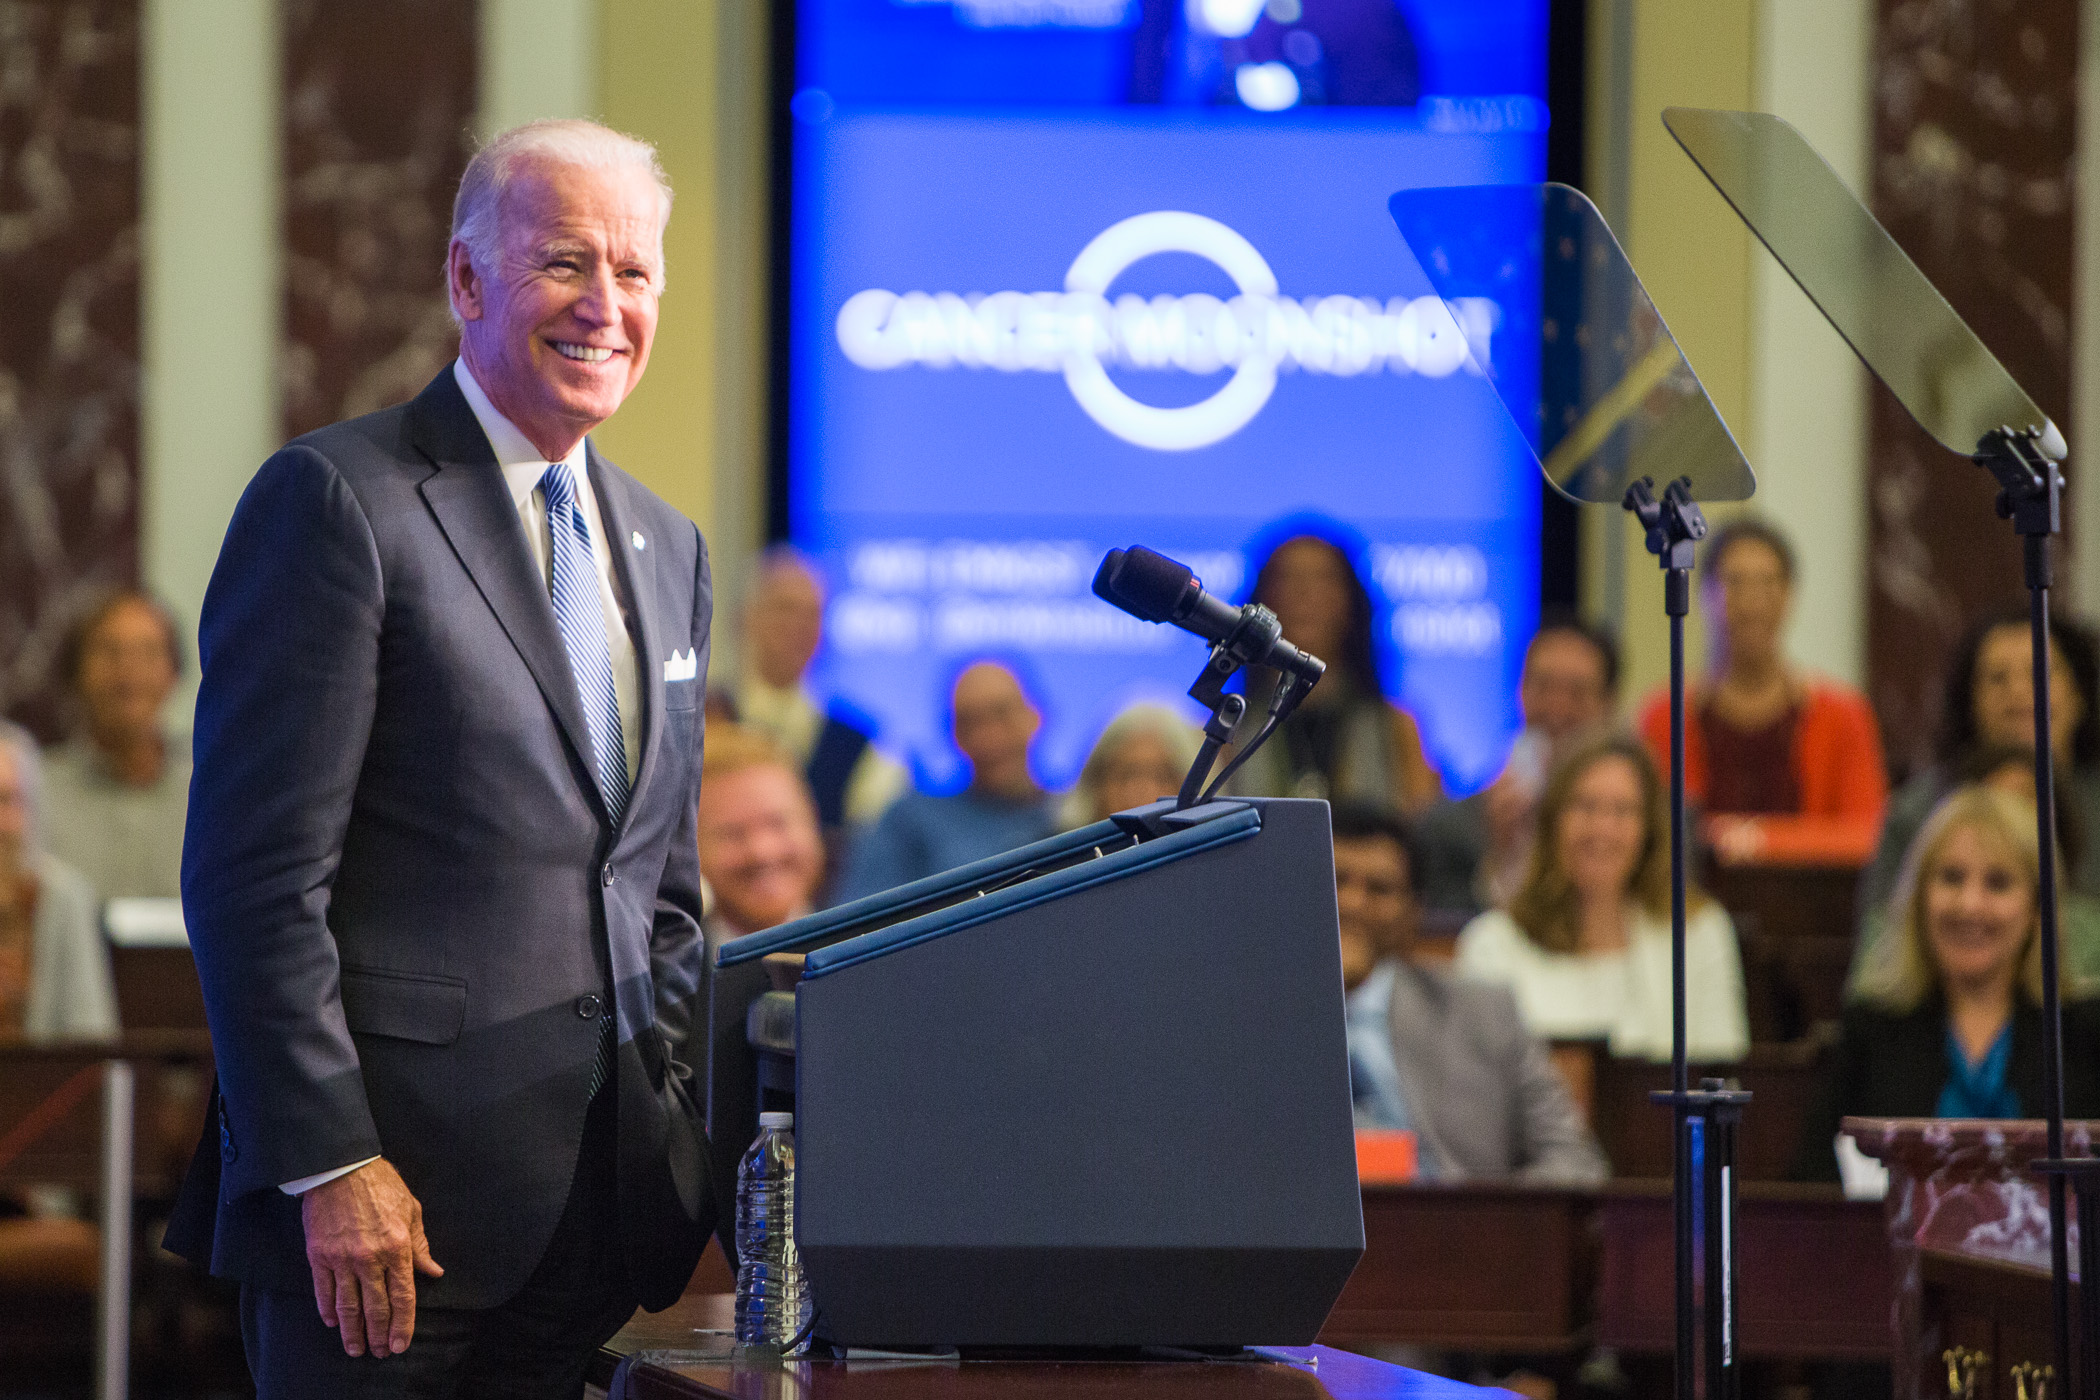 VP Biden Close up smiling